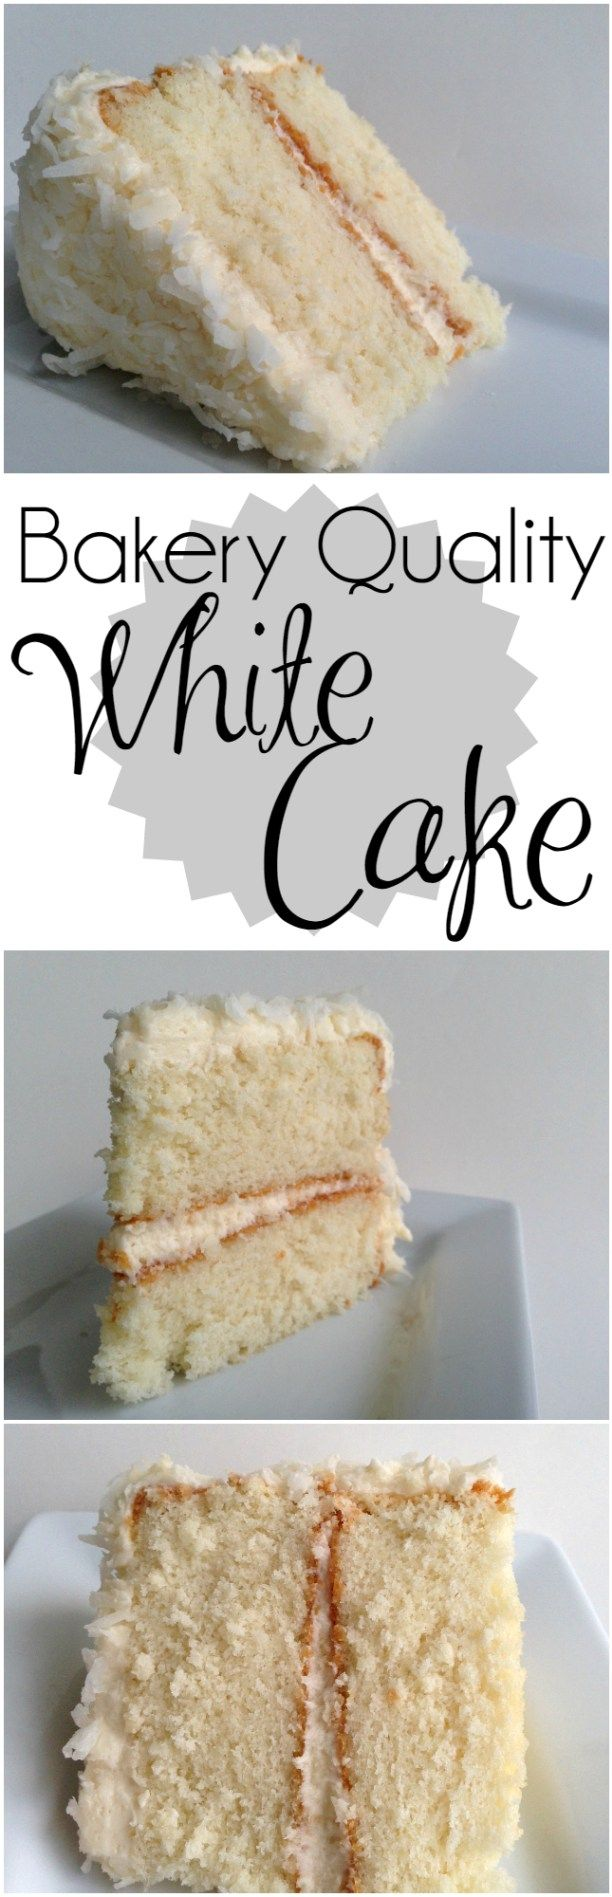 Making a Bakery Quality White Cake with Buttercream Frosting (white chocolate icing sweet treats)